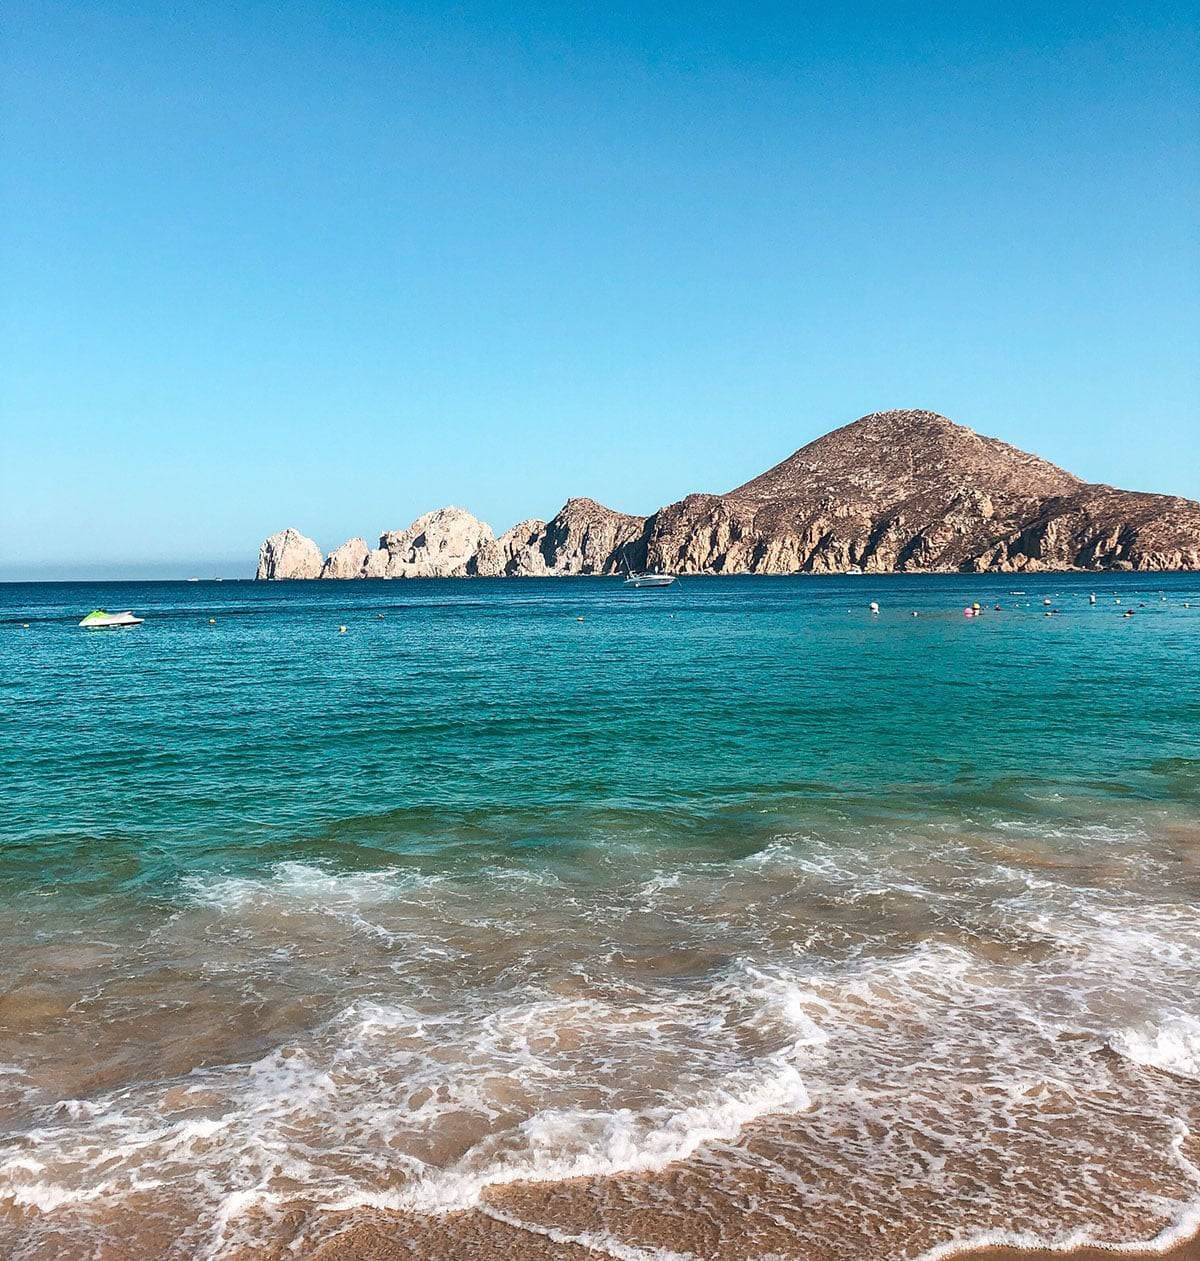 beach in cabo san lucas with mountain in the back